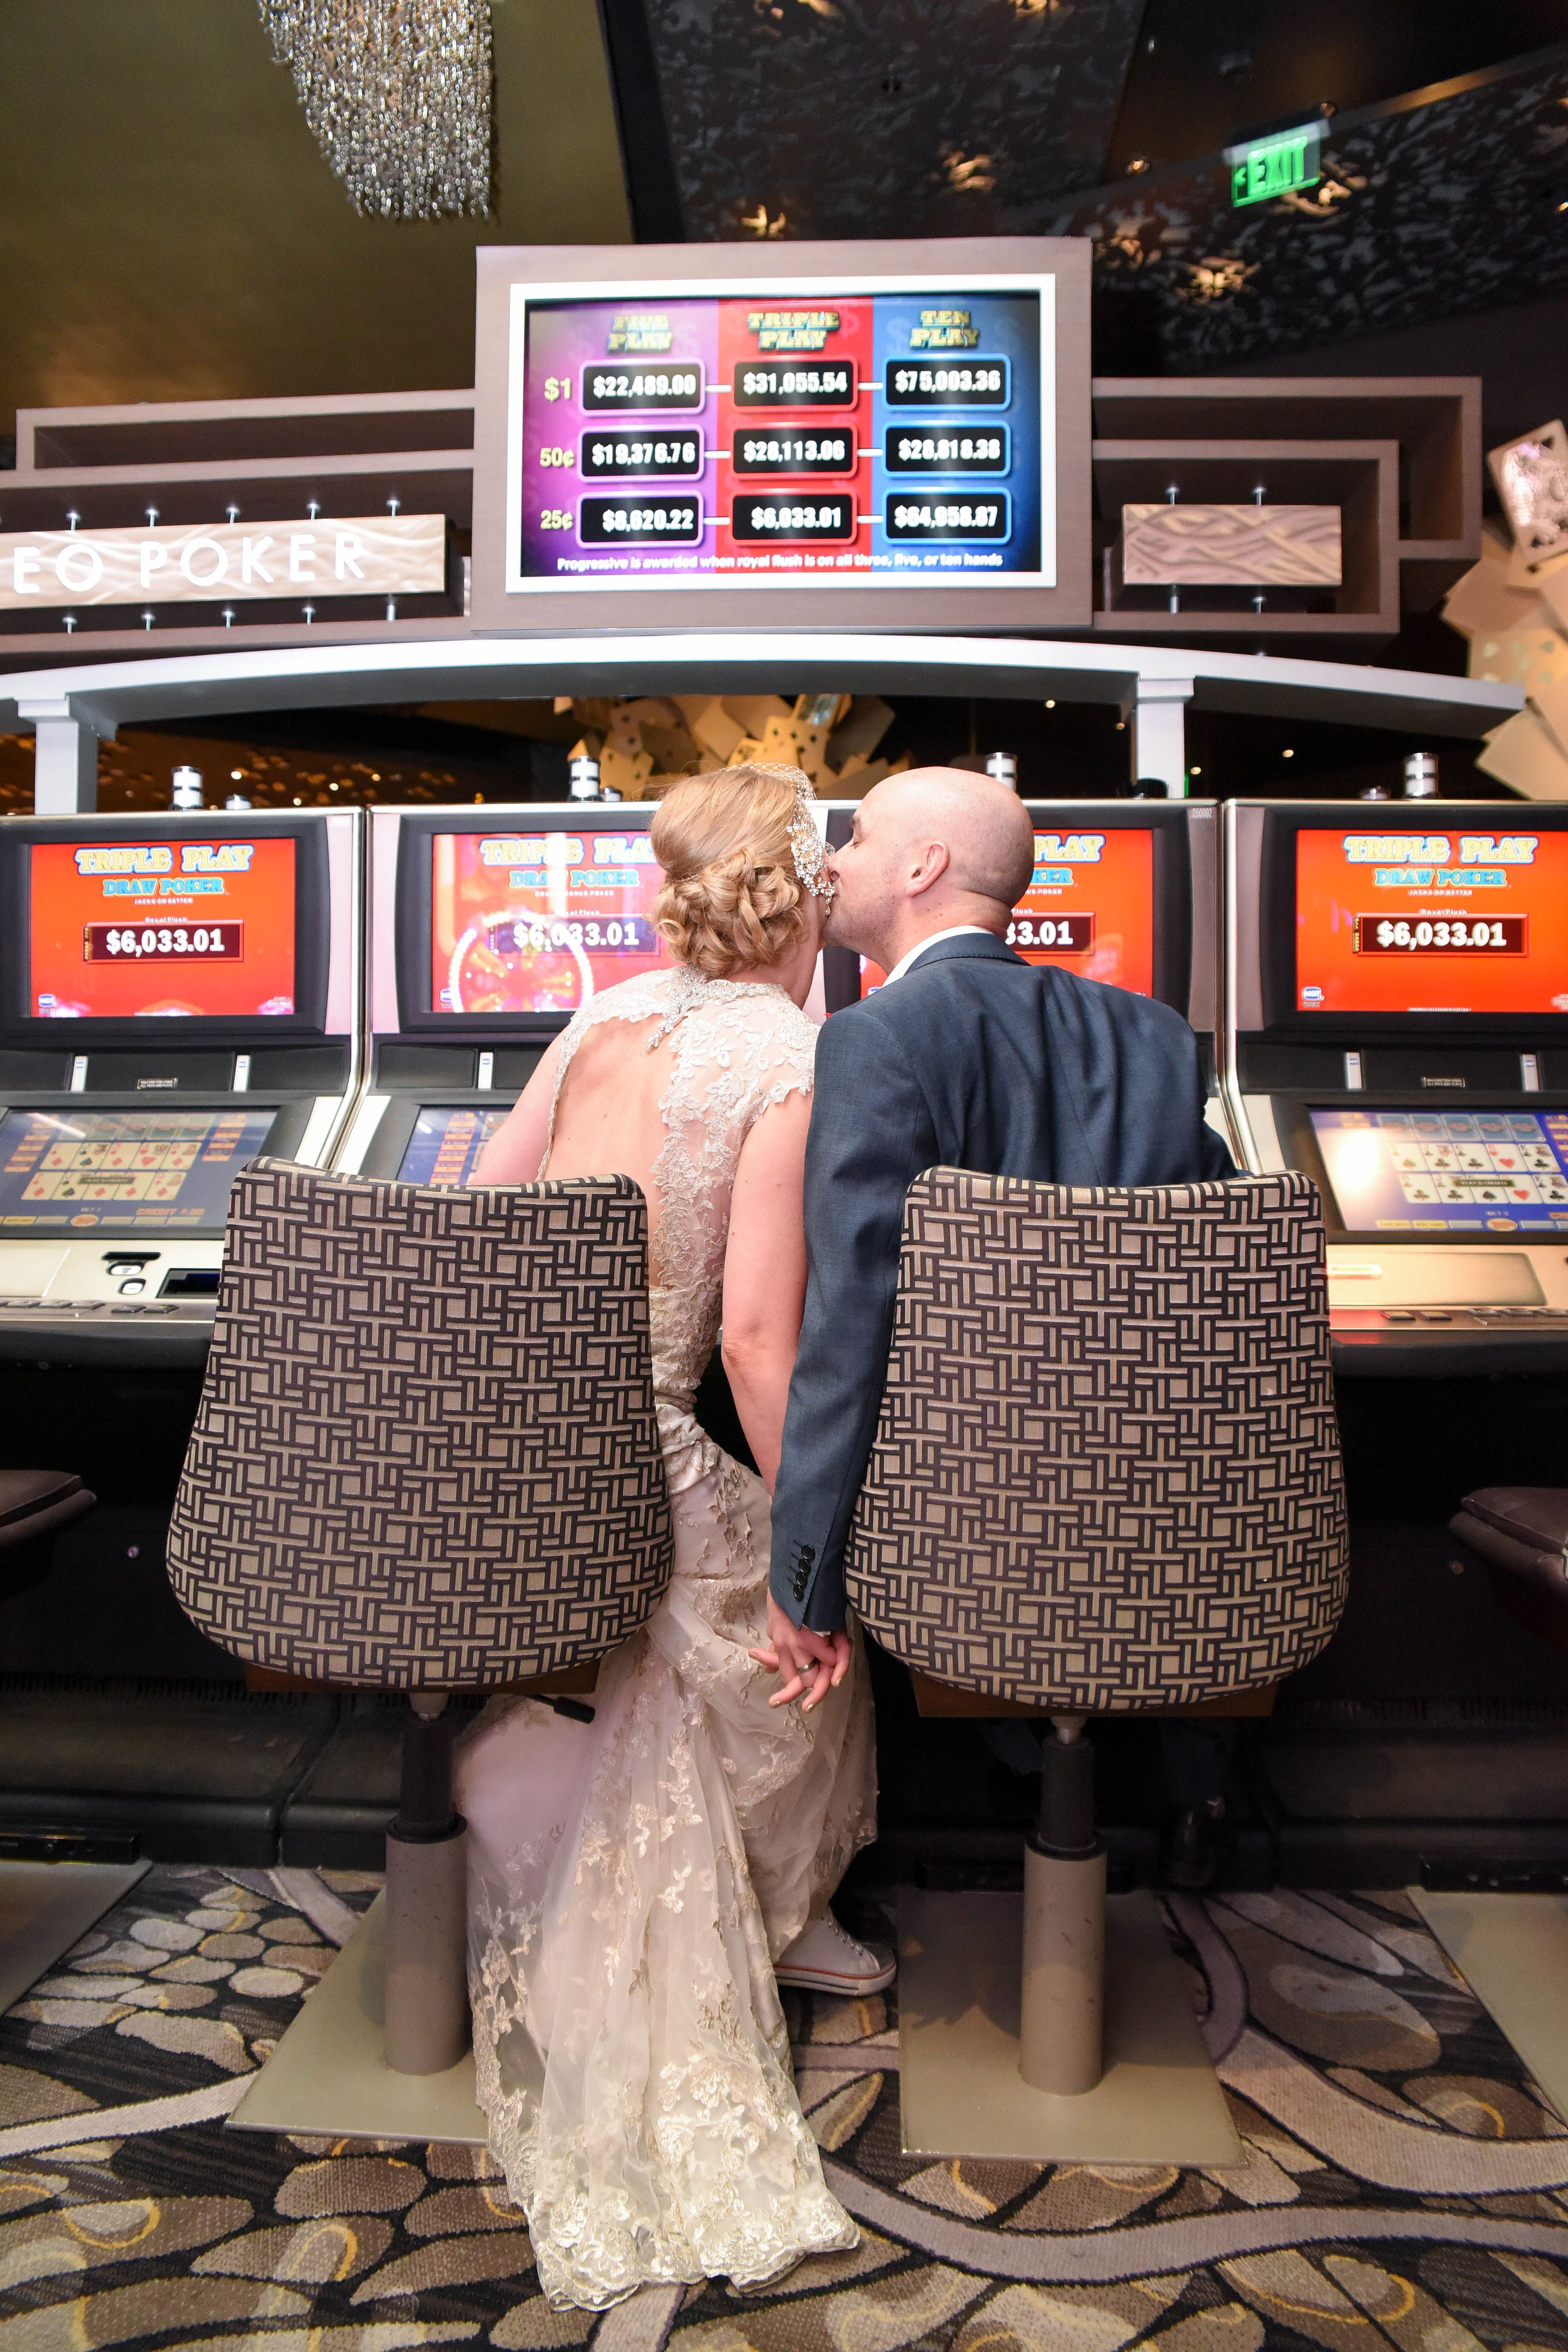 Vegas Themed Wedding Getting Married In Las Vegas Take A Couple Of